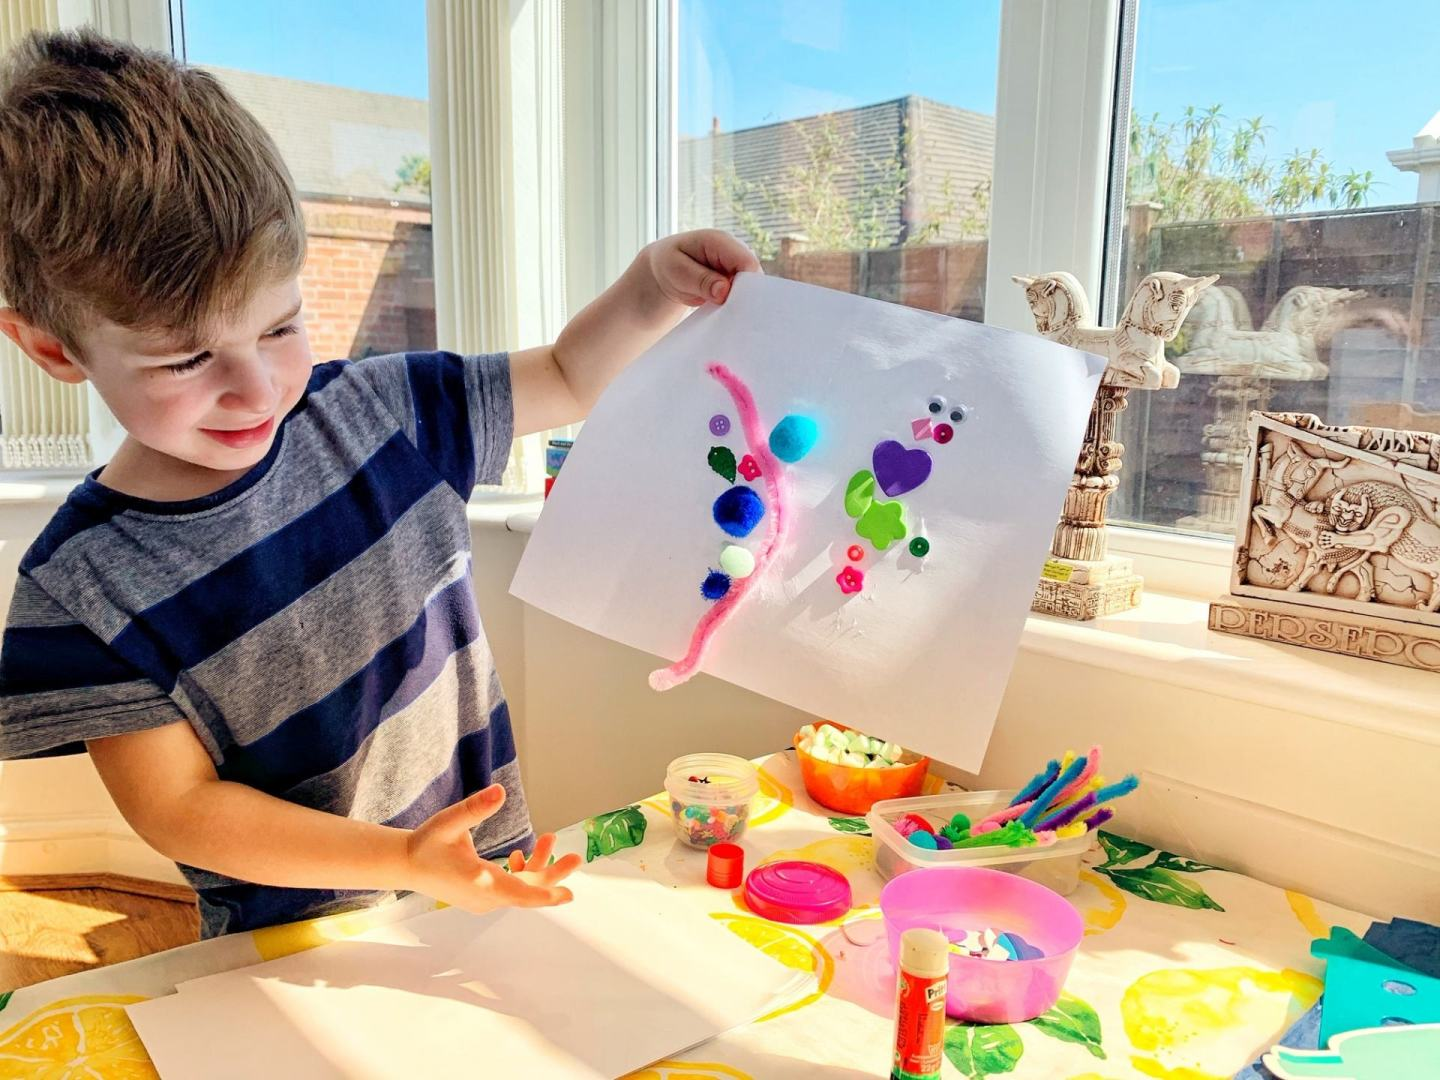 Creative kids activities when you're working from home